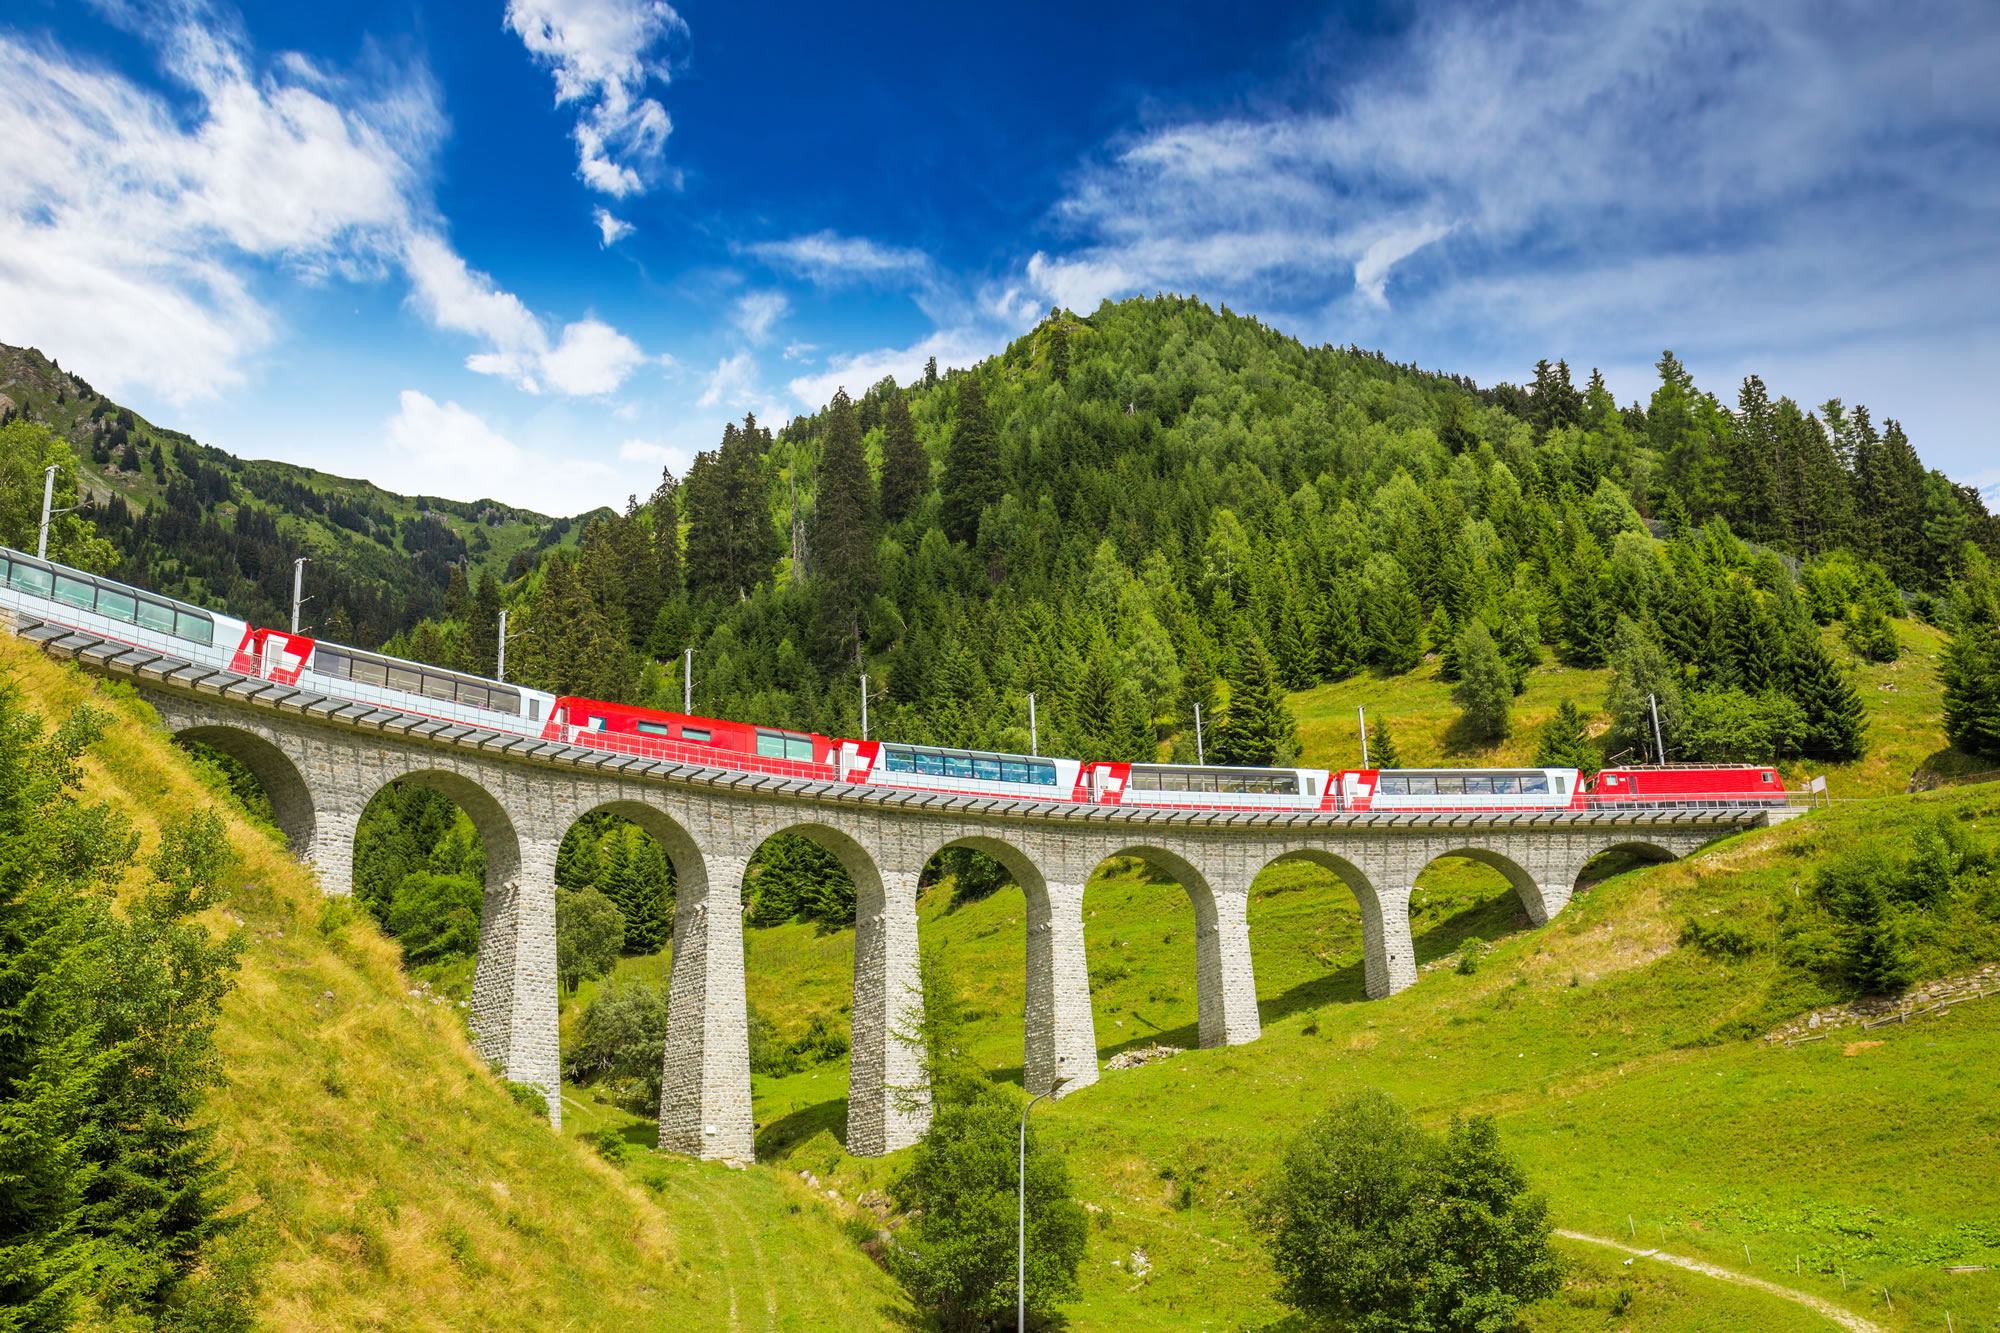 Viaduct Bridge, Albula / Bernina Switzerland